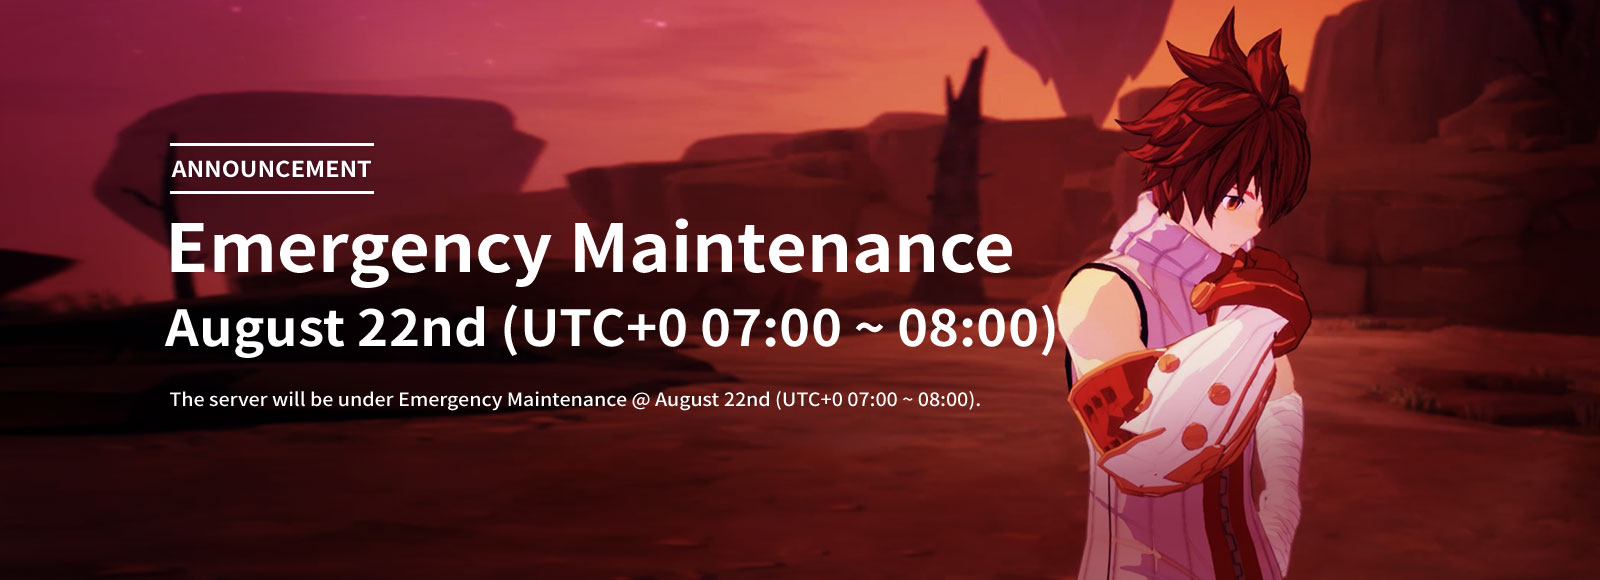 August 22nd Emergency Maintenance Announcement